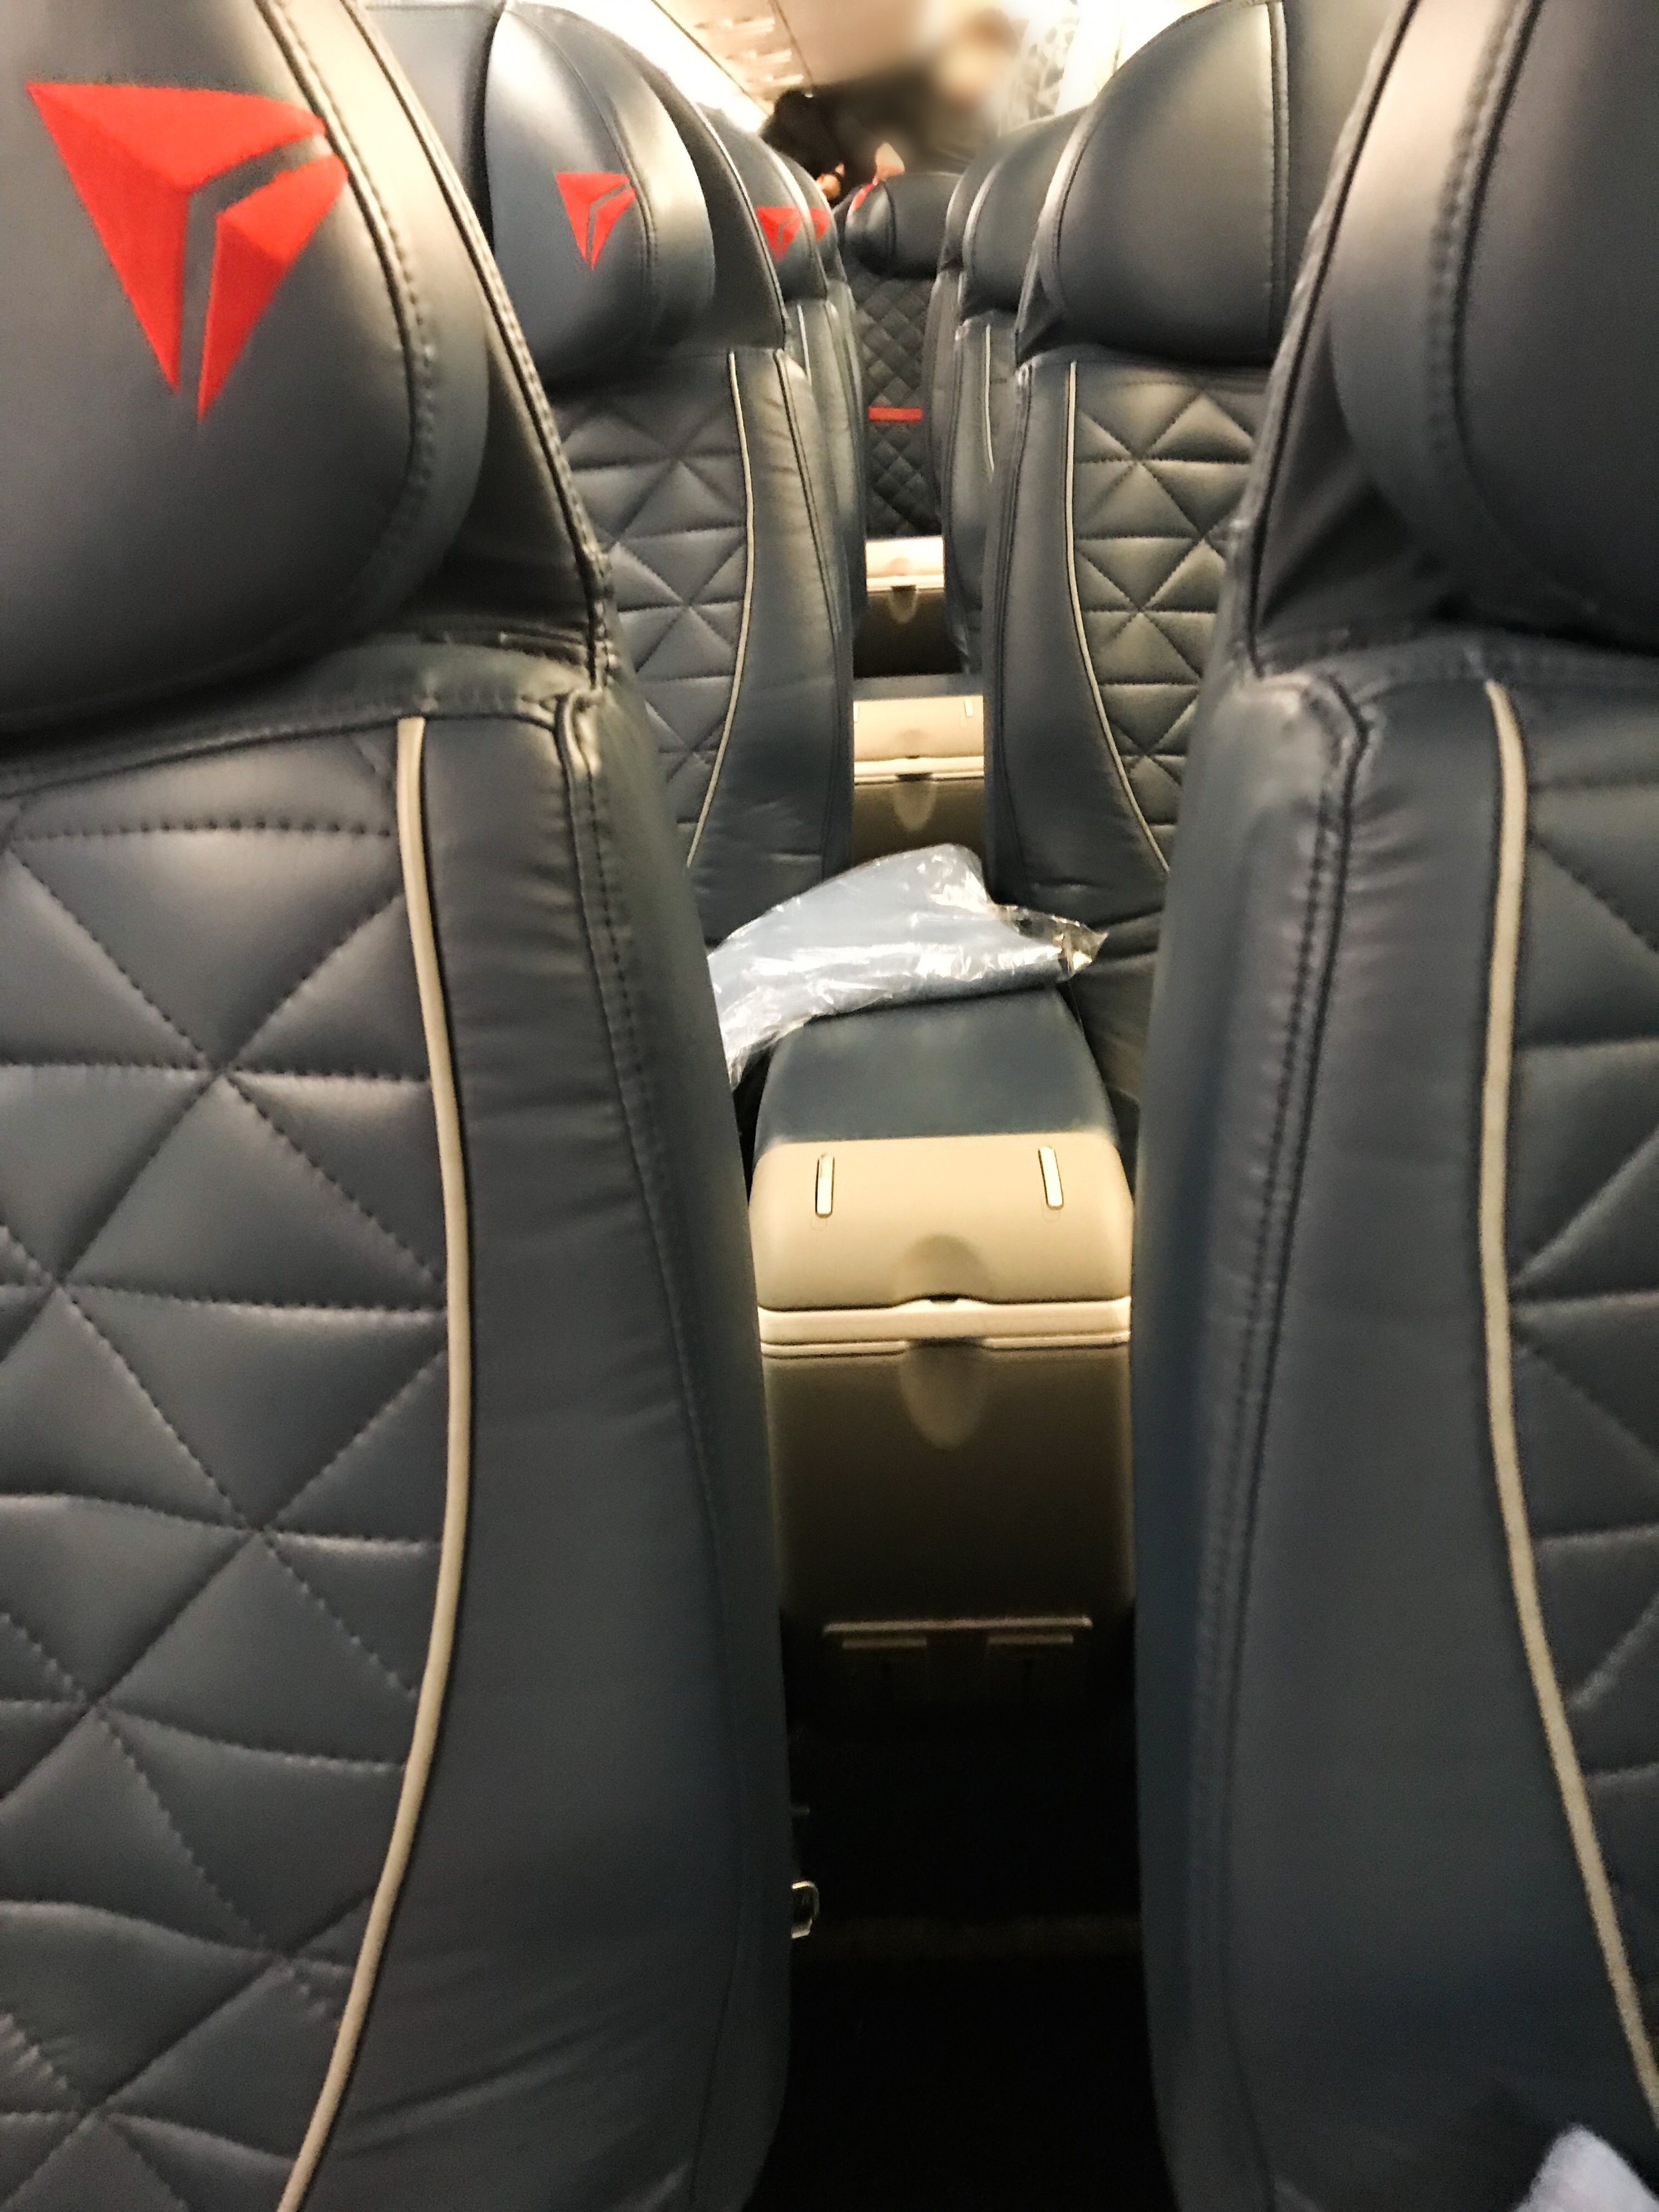 Even though the ERJ-175 is a regional jet, the First Class seats are comparable in size and comfort to Delta's mainline fleet.